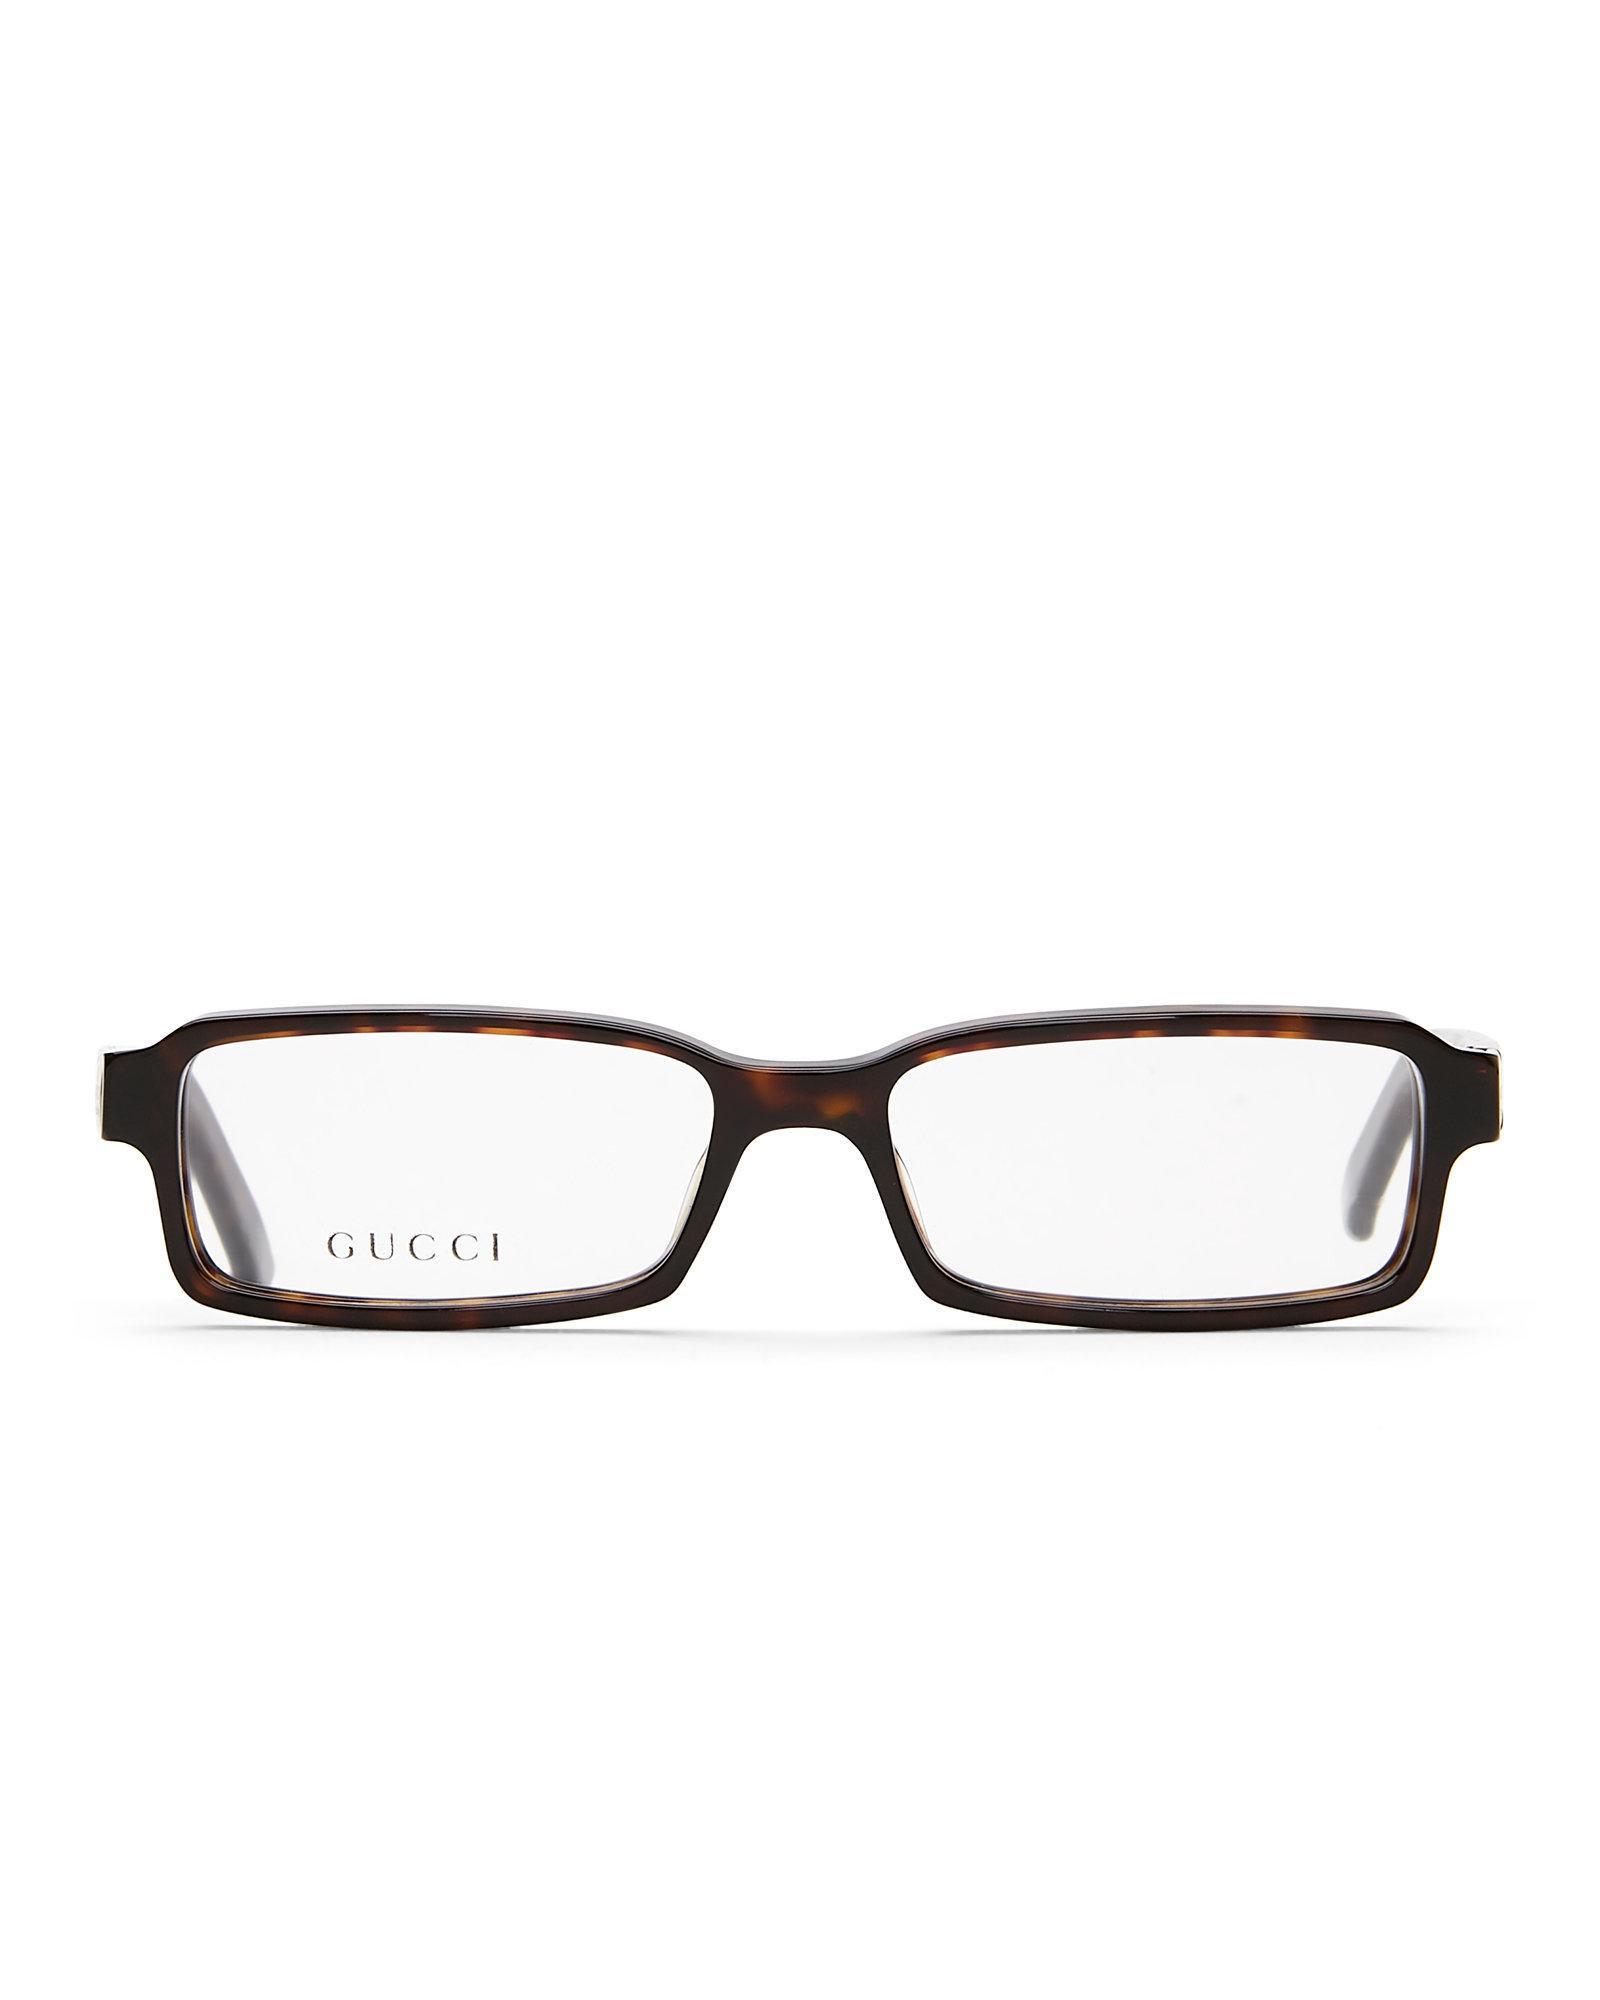 b8dc393e822 Lyst - Gucci Gg 1574 Tortoiseshell-Look Rectangle Optical Frames in ...